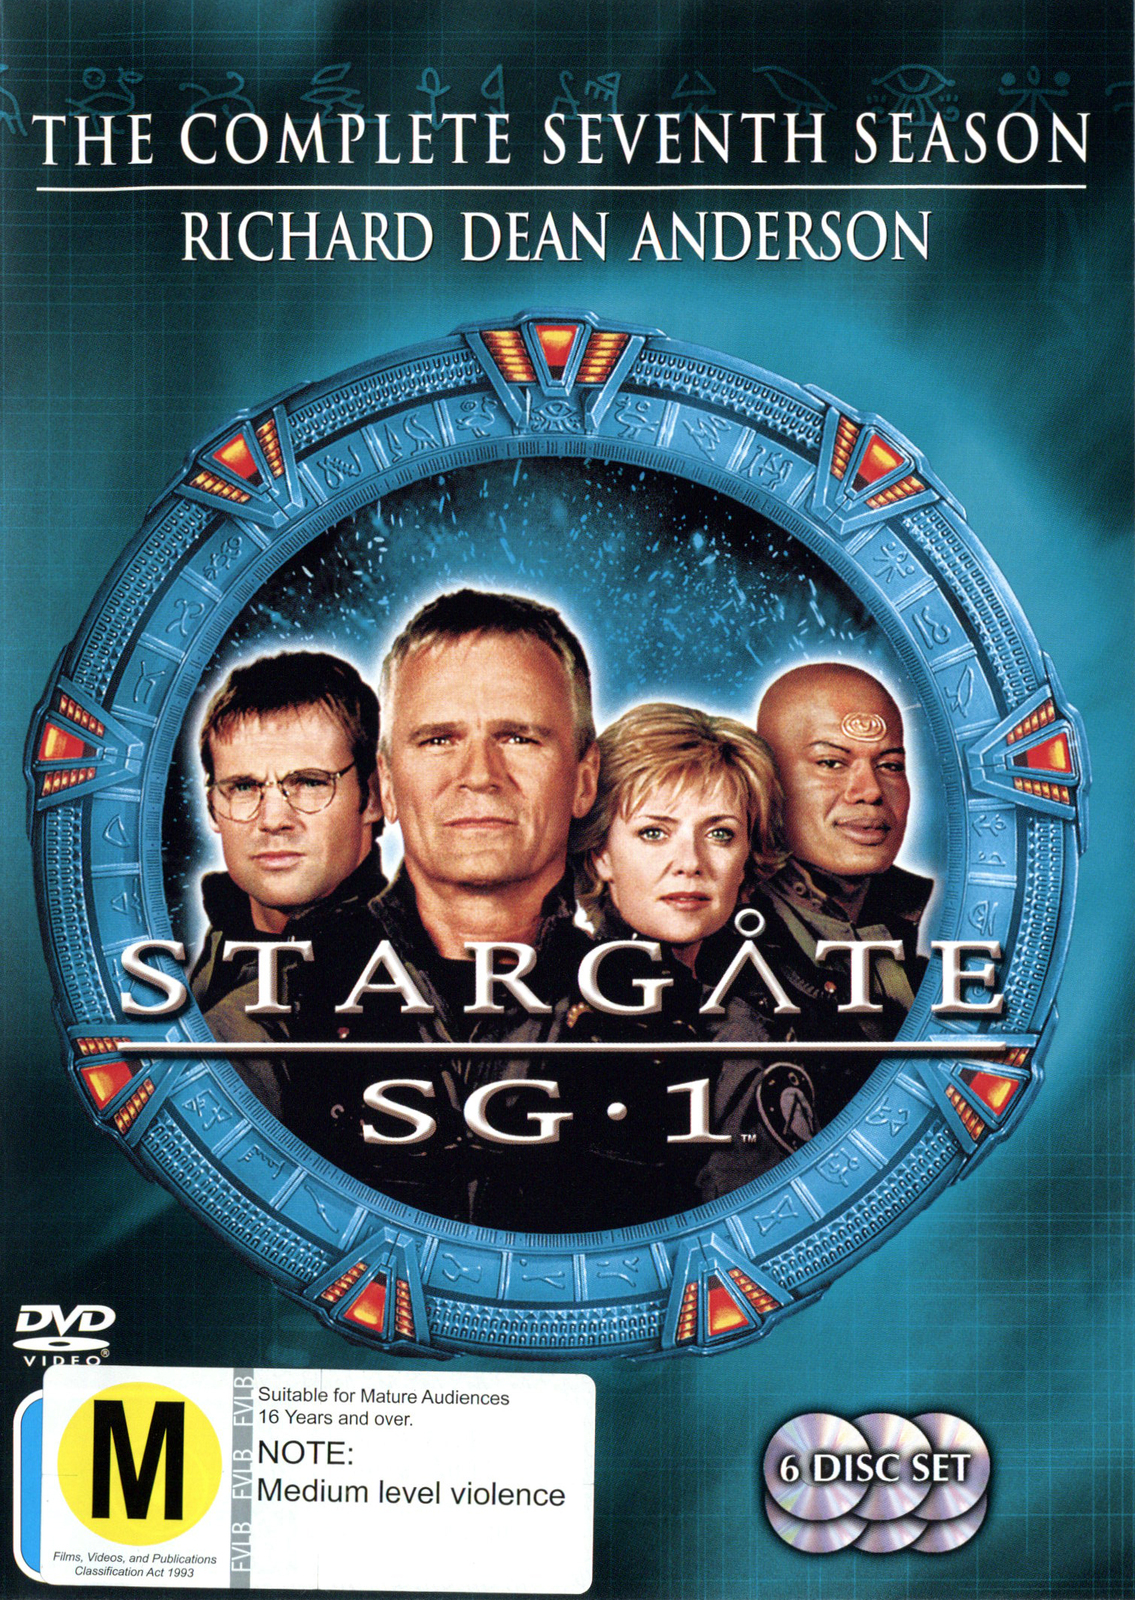 Stargate SG-1 - Season 7 (6 Disc Set) (New Packaging) on DVD image